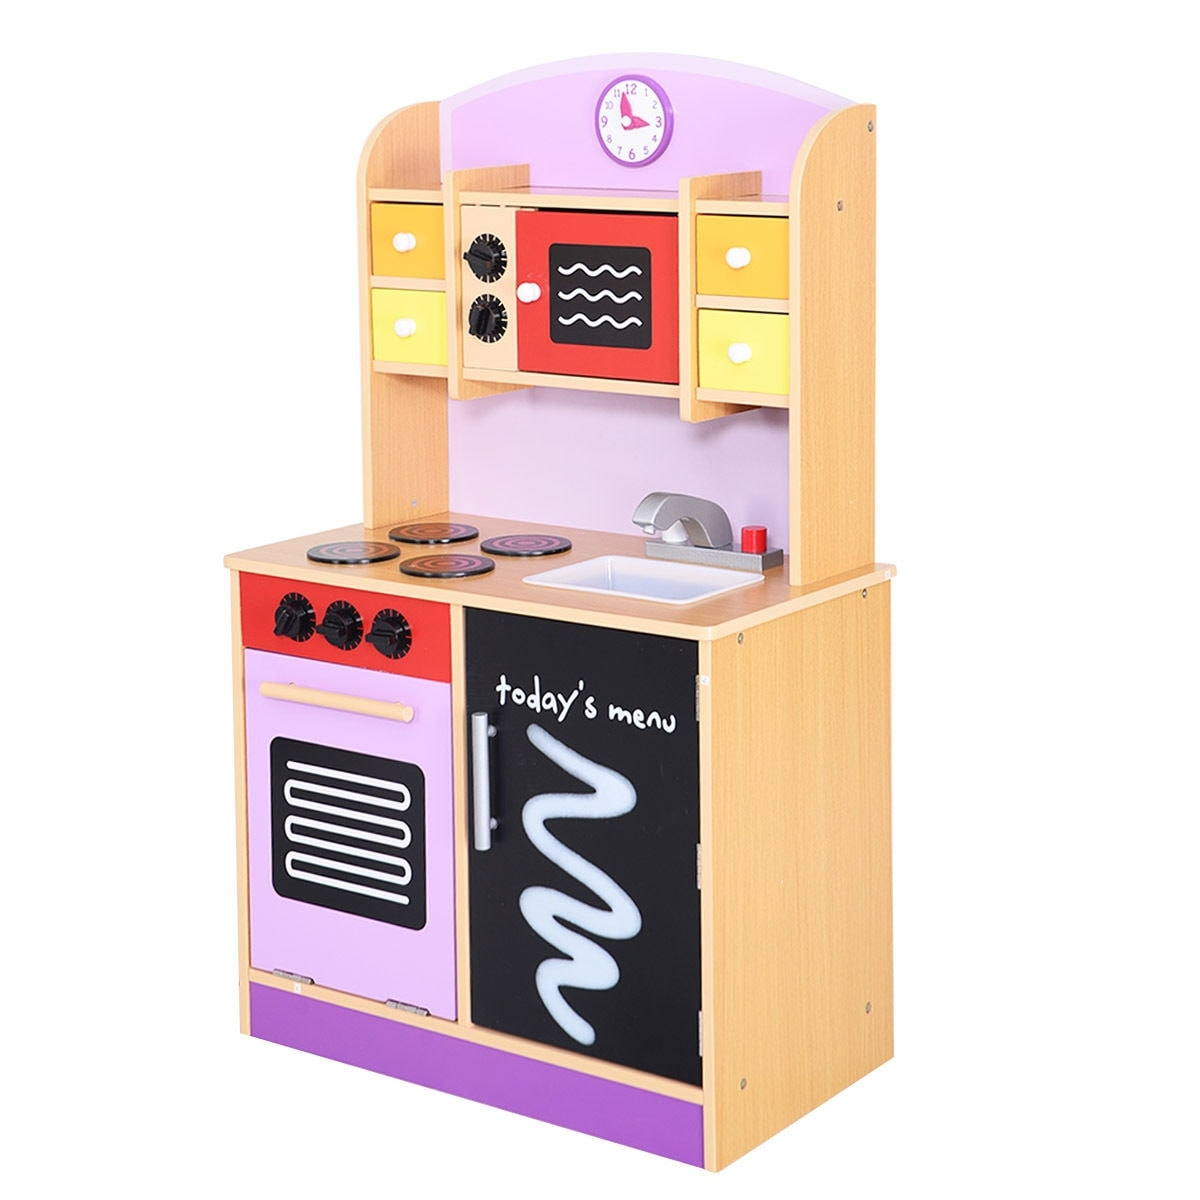 wood kitchen playsets yellow gloves shop generic toy kids cooking pretend play set toddler wooden playset pink free shipping today overstock com 16004193